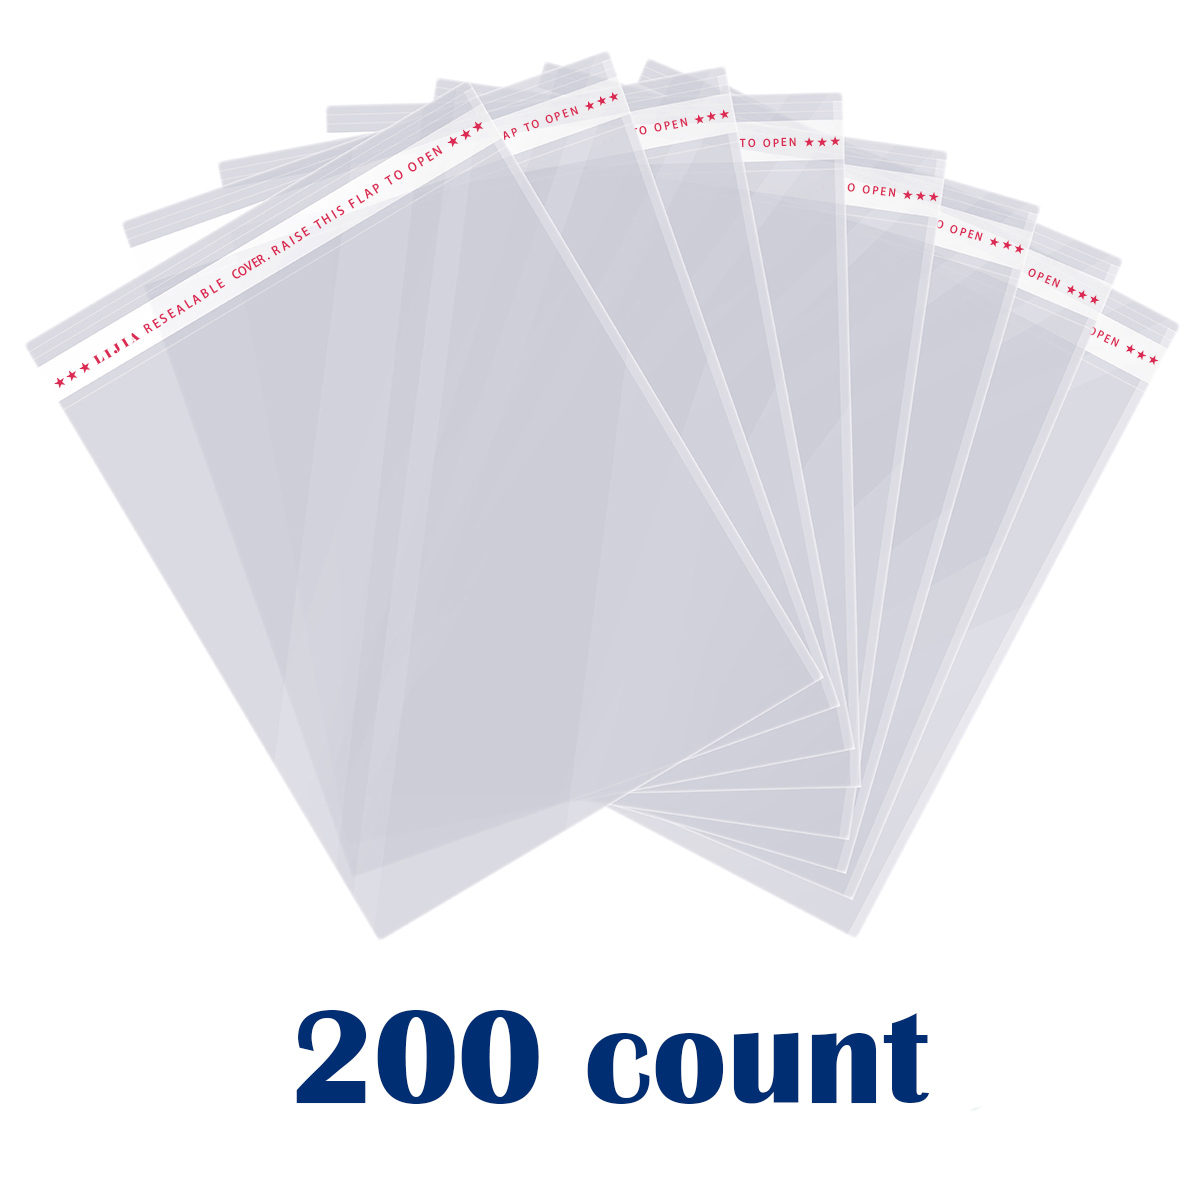 100 Pieces Mail Bags Clear Apparel Self Adhesive Seal Plastic For T-Shirt And X